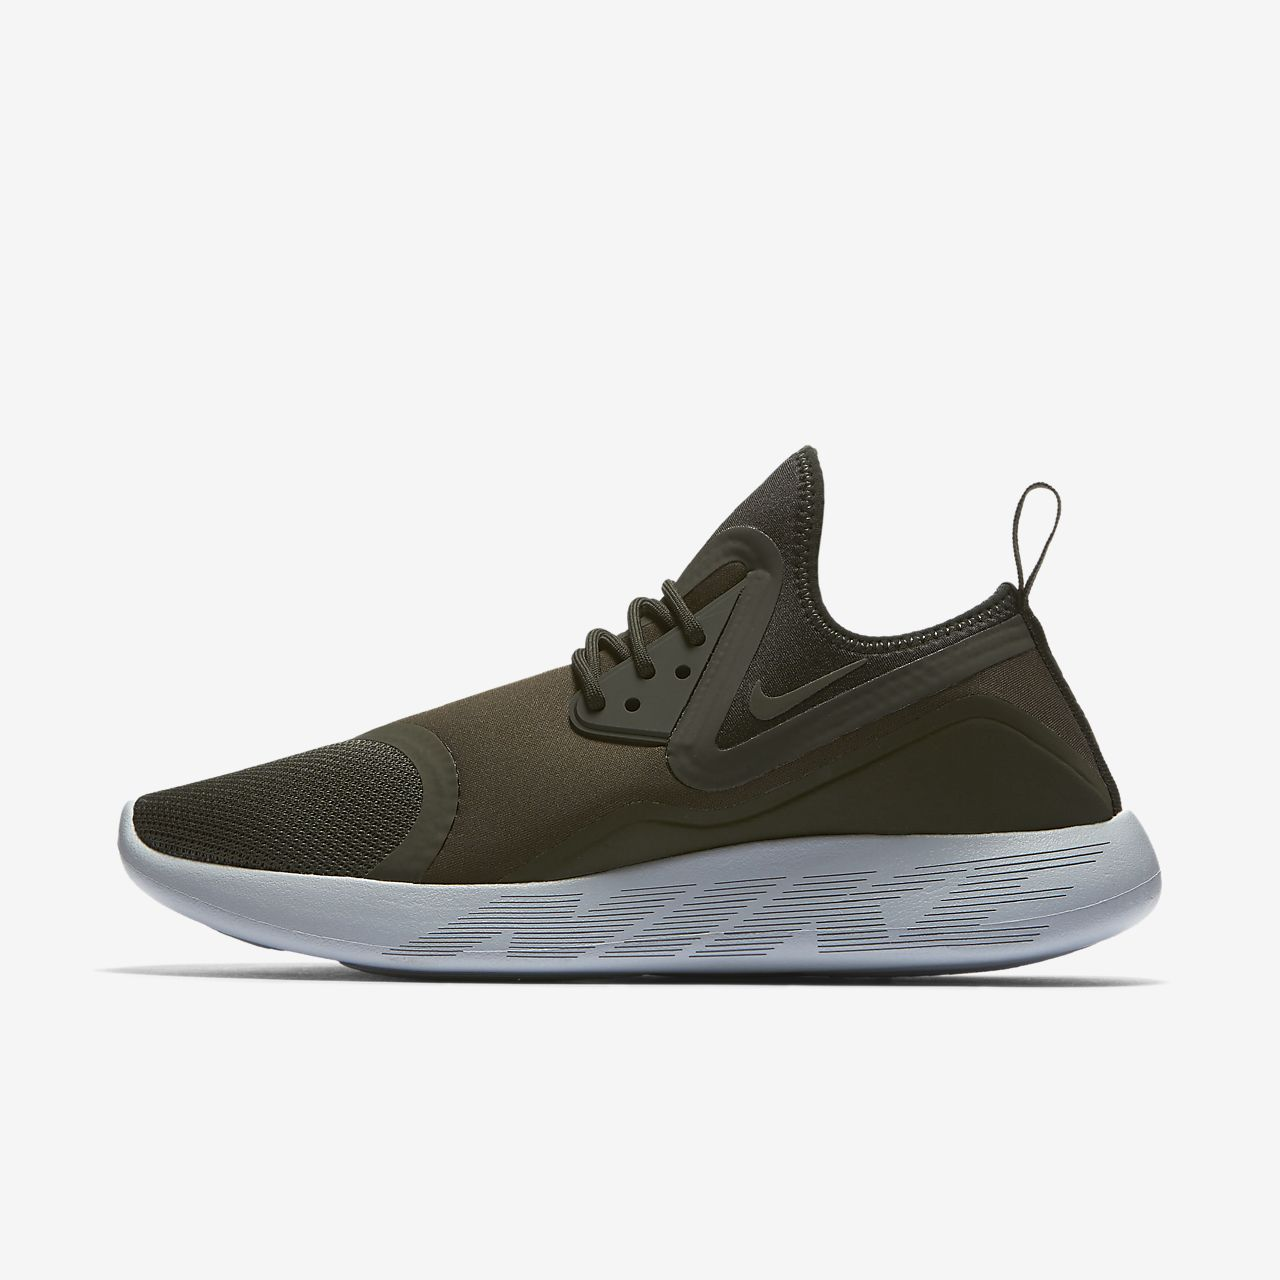 8006d31c10ff Low Resolution Nike LunarCharge Essential Men s Shoe Nike LunarCharge  Essential Men s Shoe